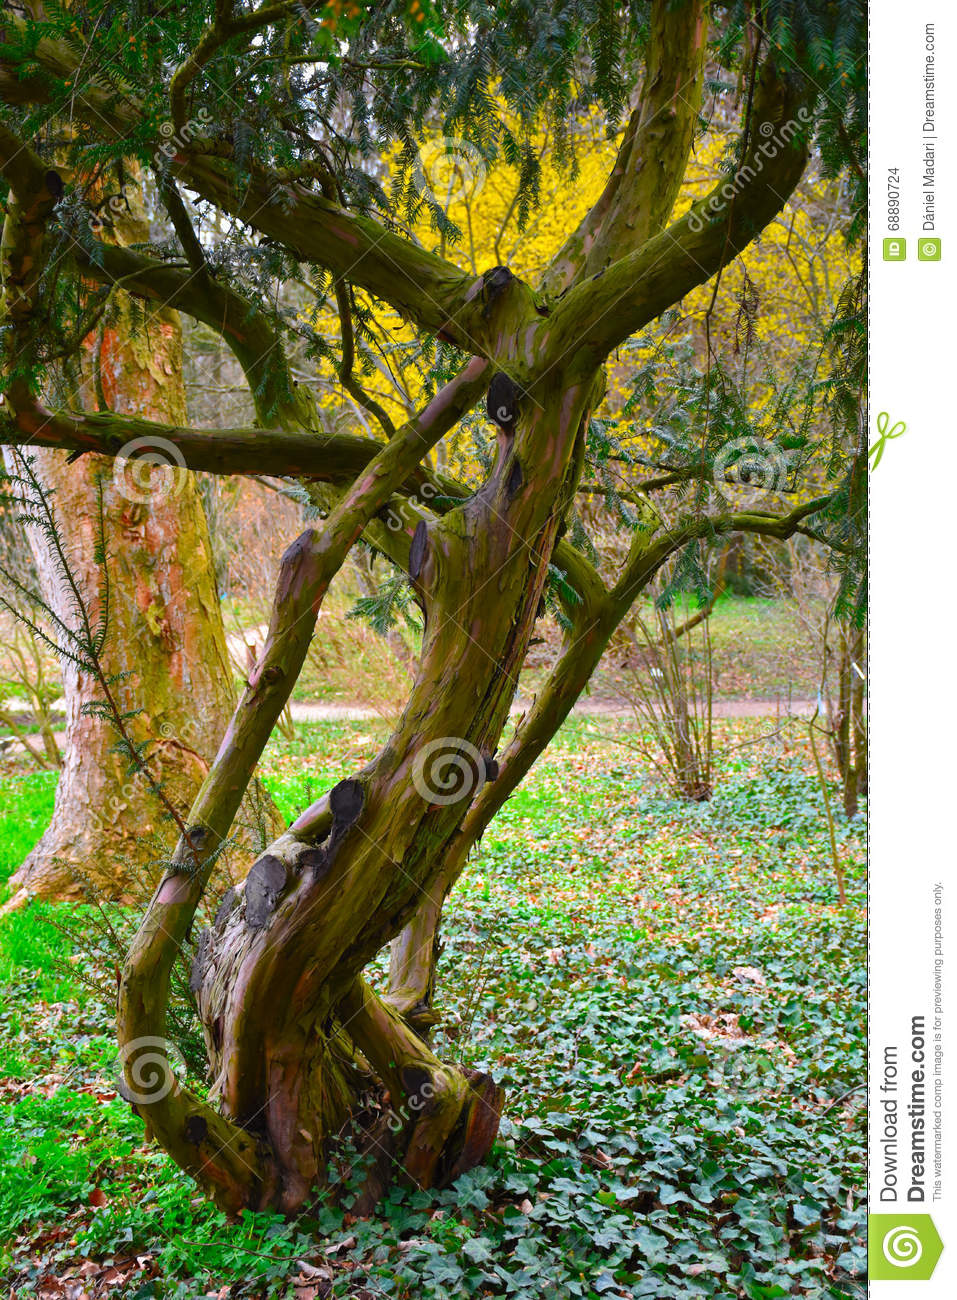 Old, Sick Pine In Colorful Environment Stock Photo - Image of nice ...